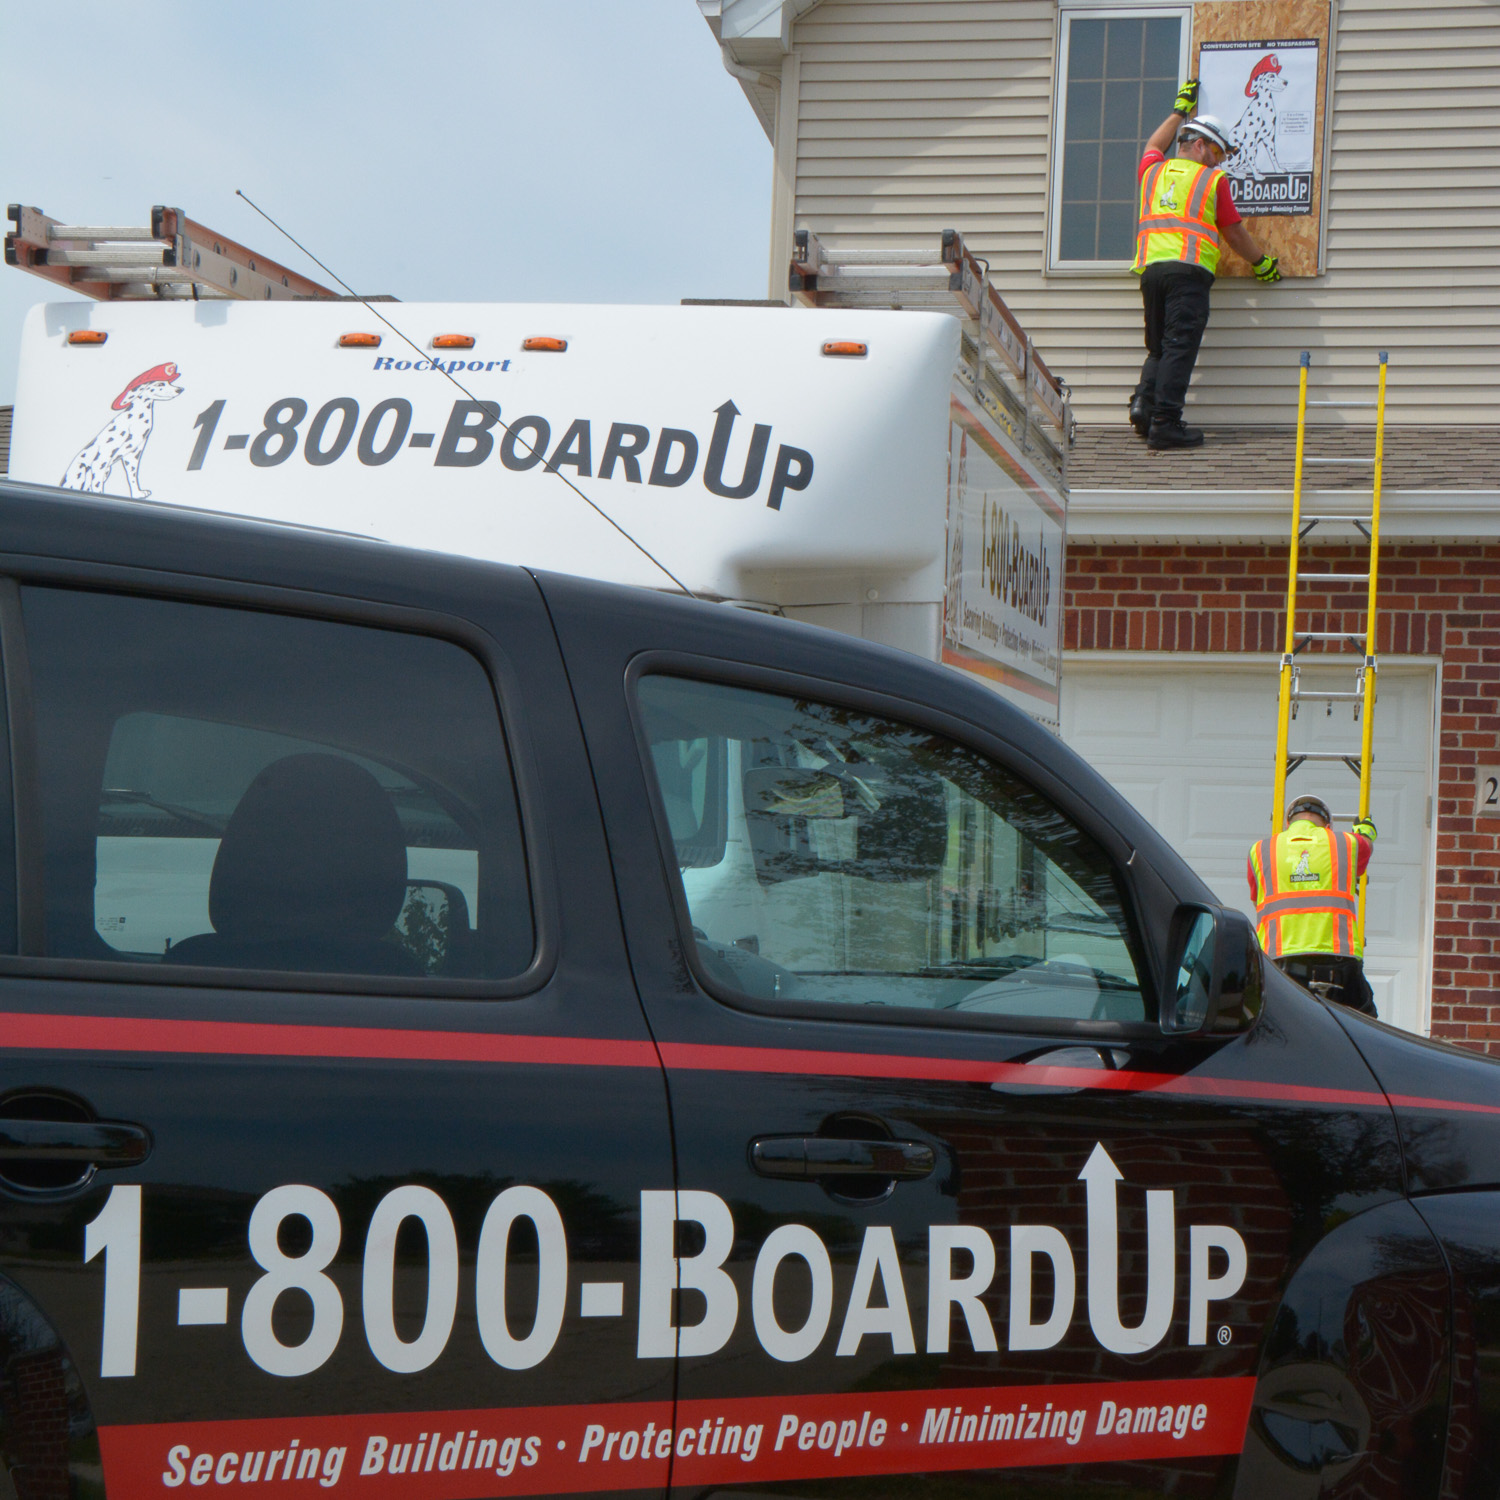 boardup vehicle in front of house. crew climbing ladder onto roof